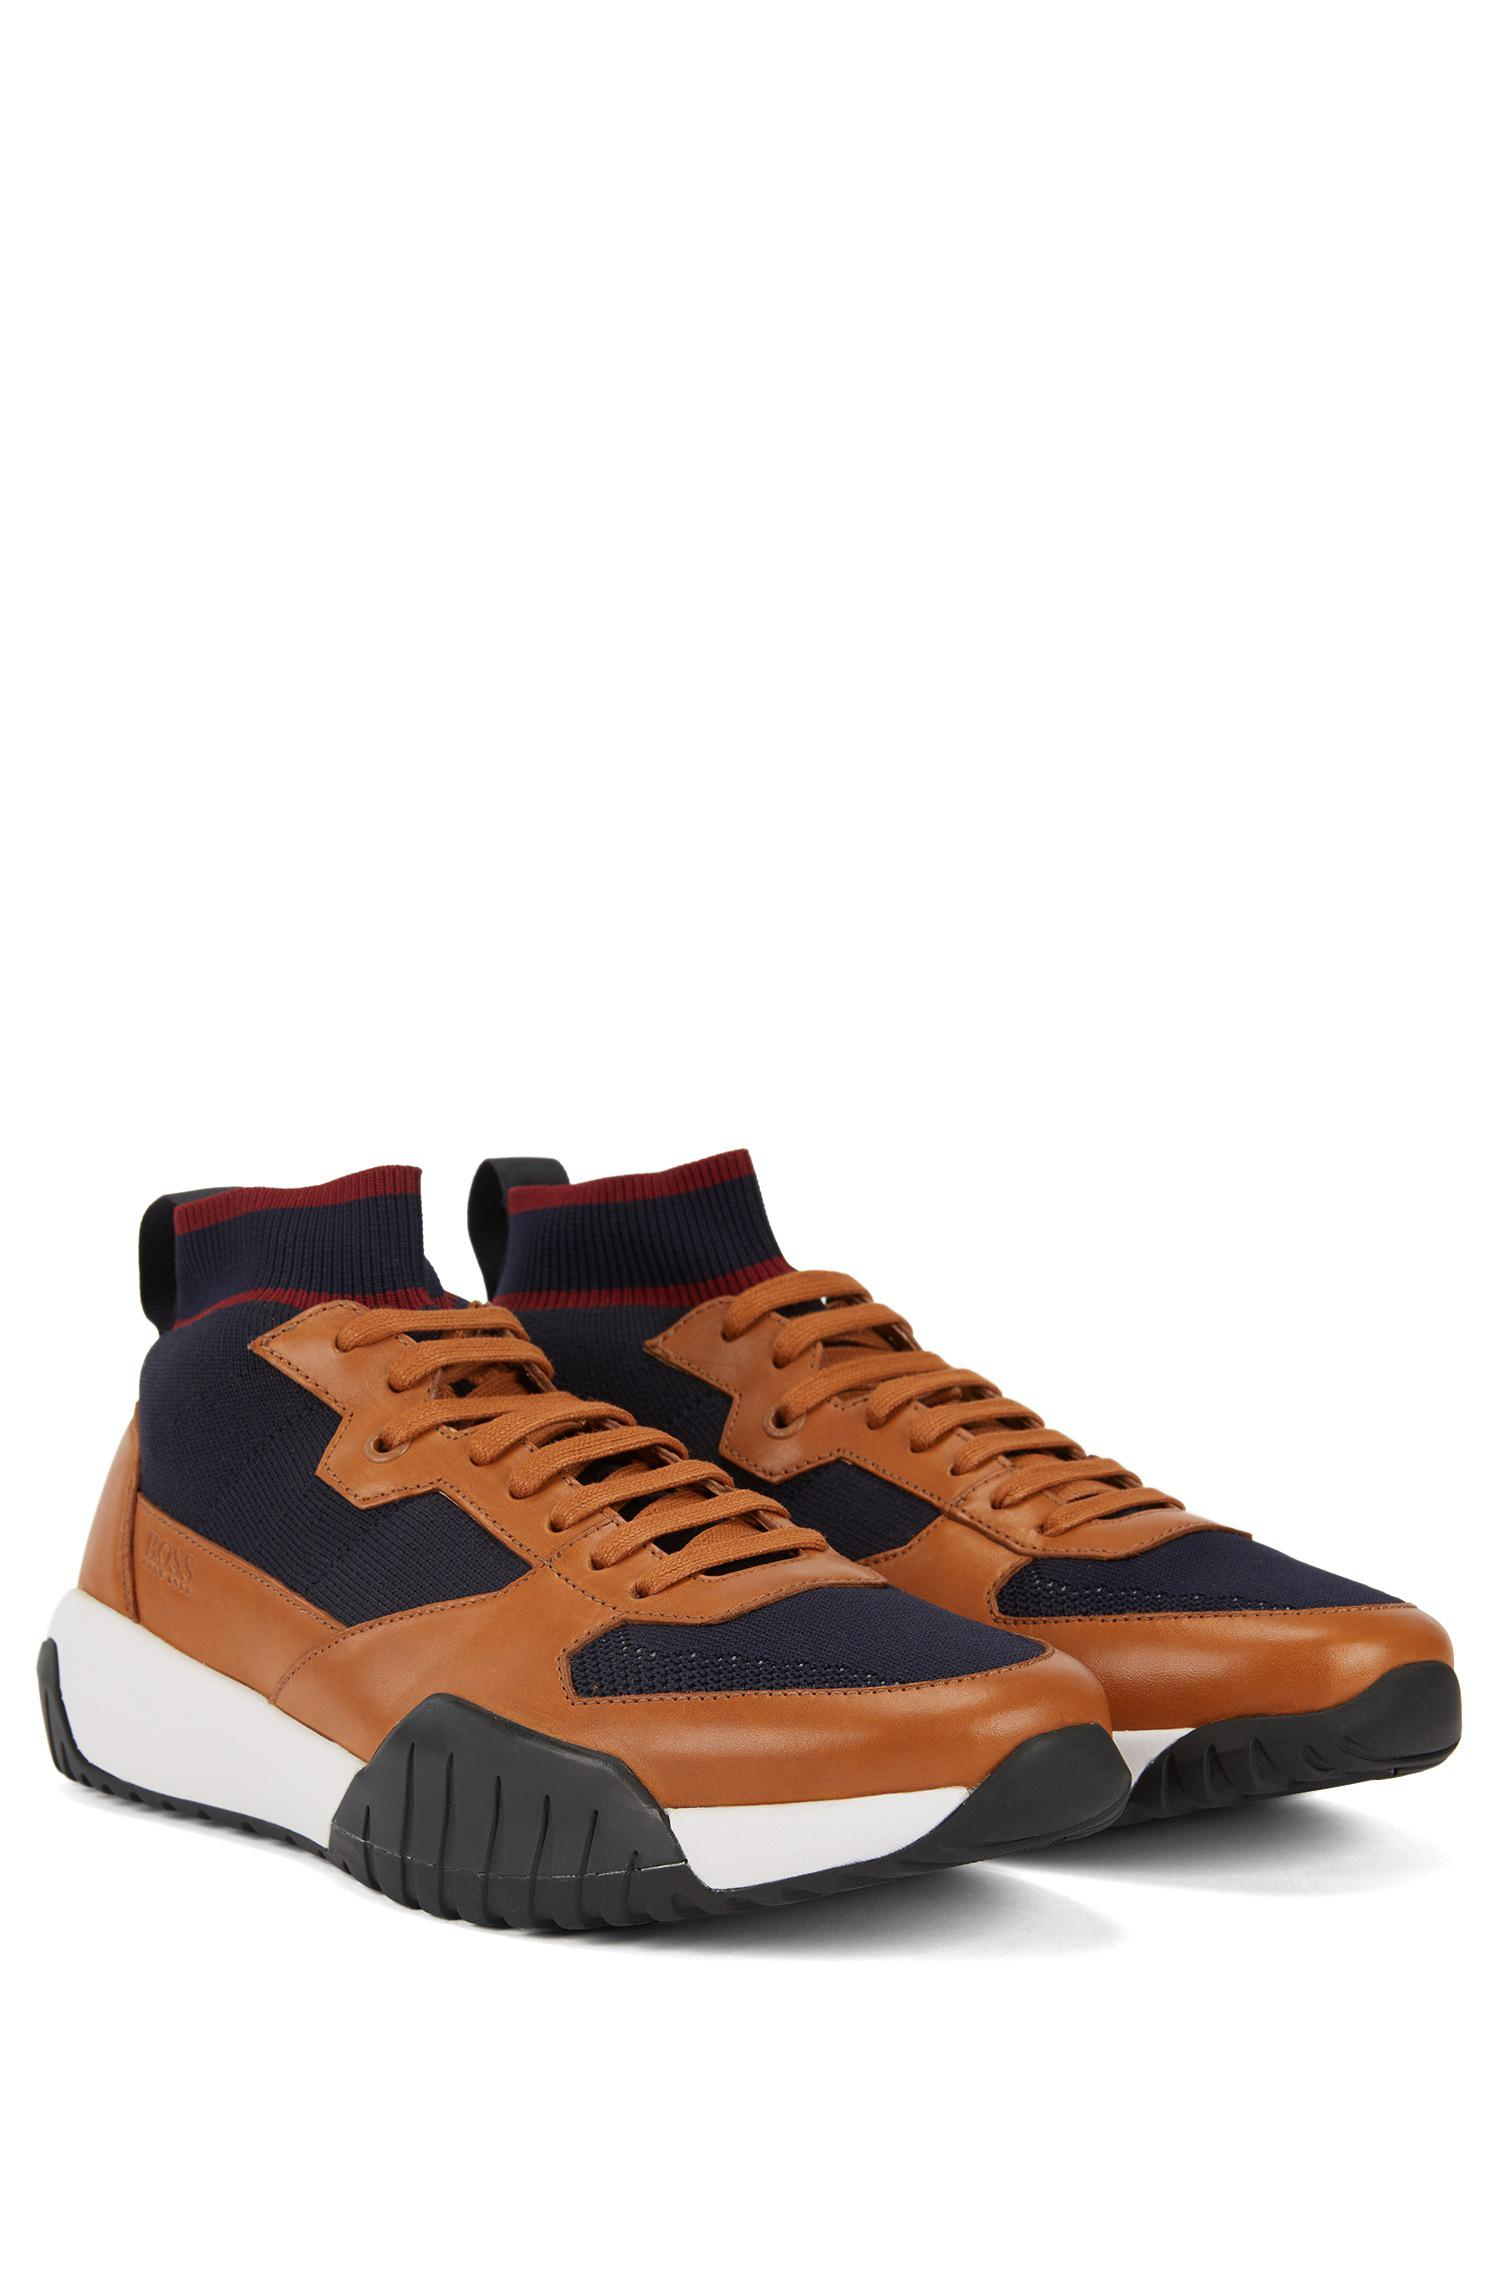 a3e7305a992 BOSS - Multicolor High-top Sock Sneakers With Calf-leather Trims for Men -.  View fullscreen